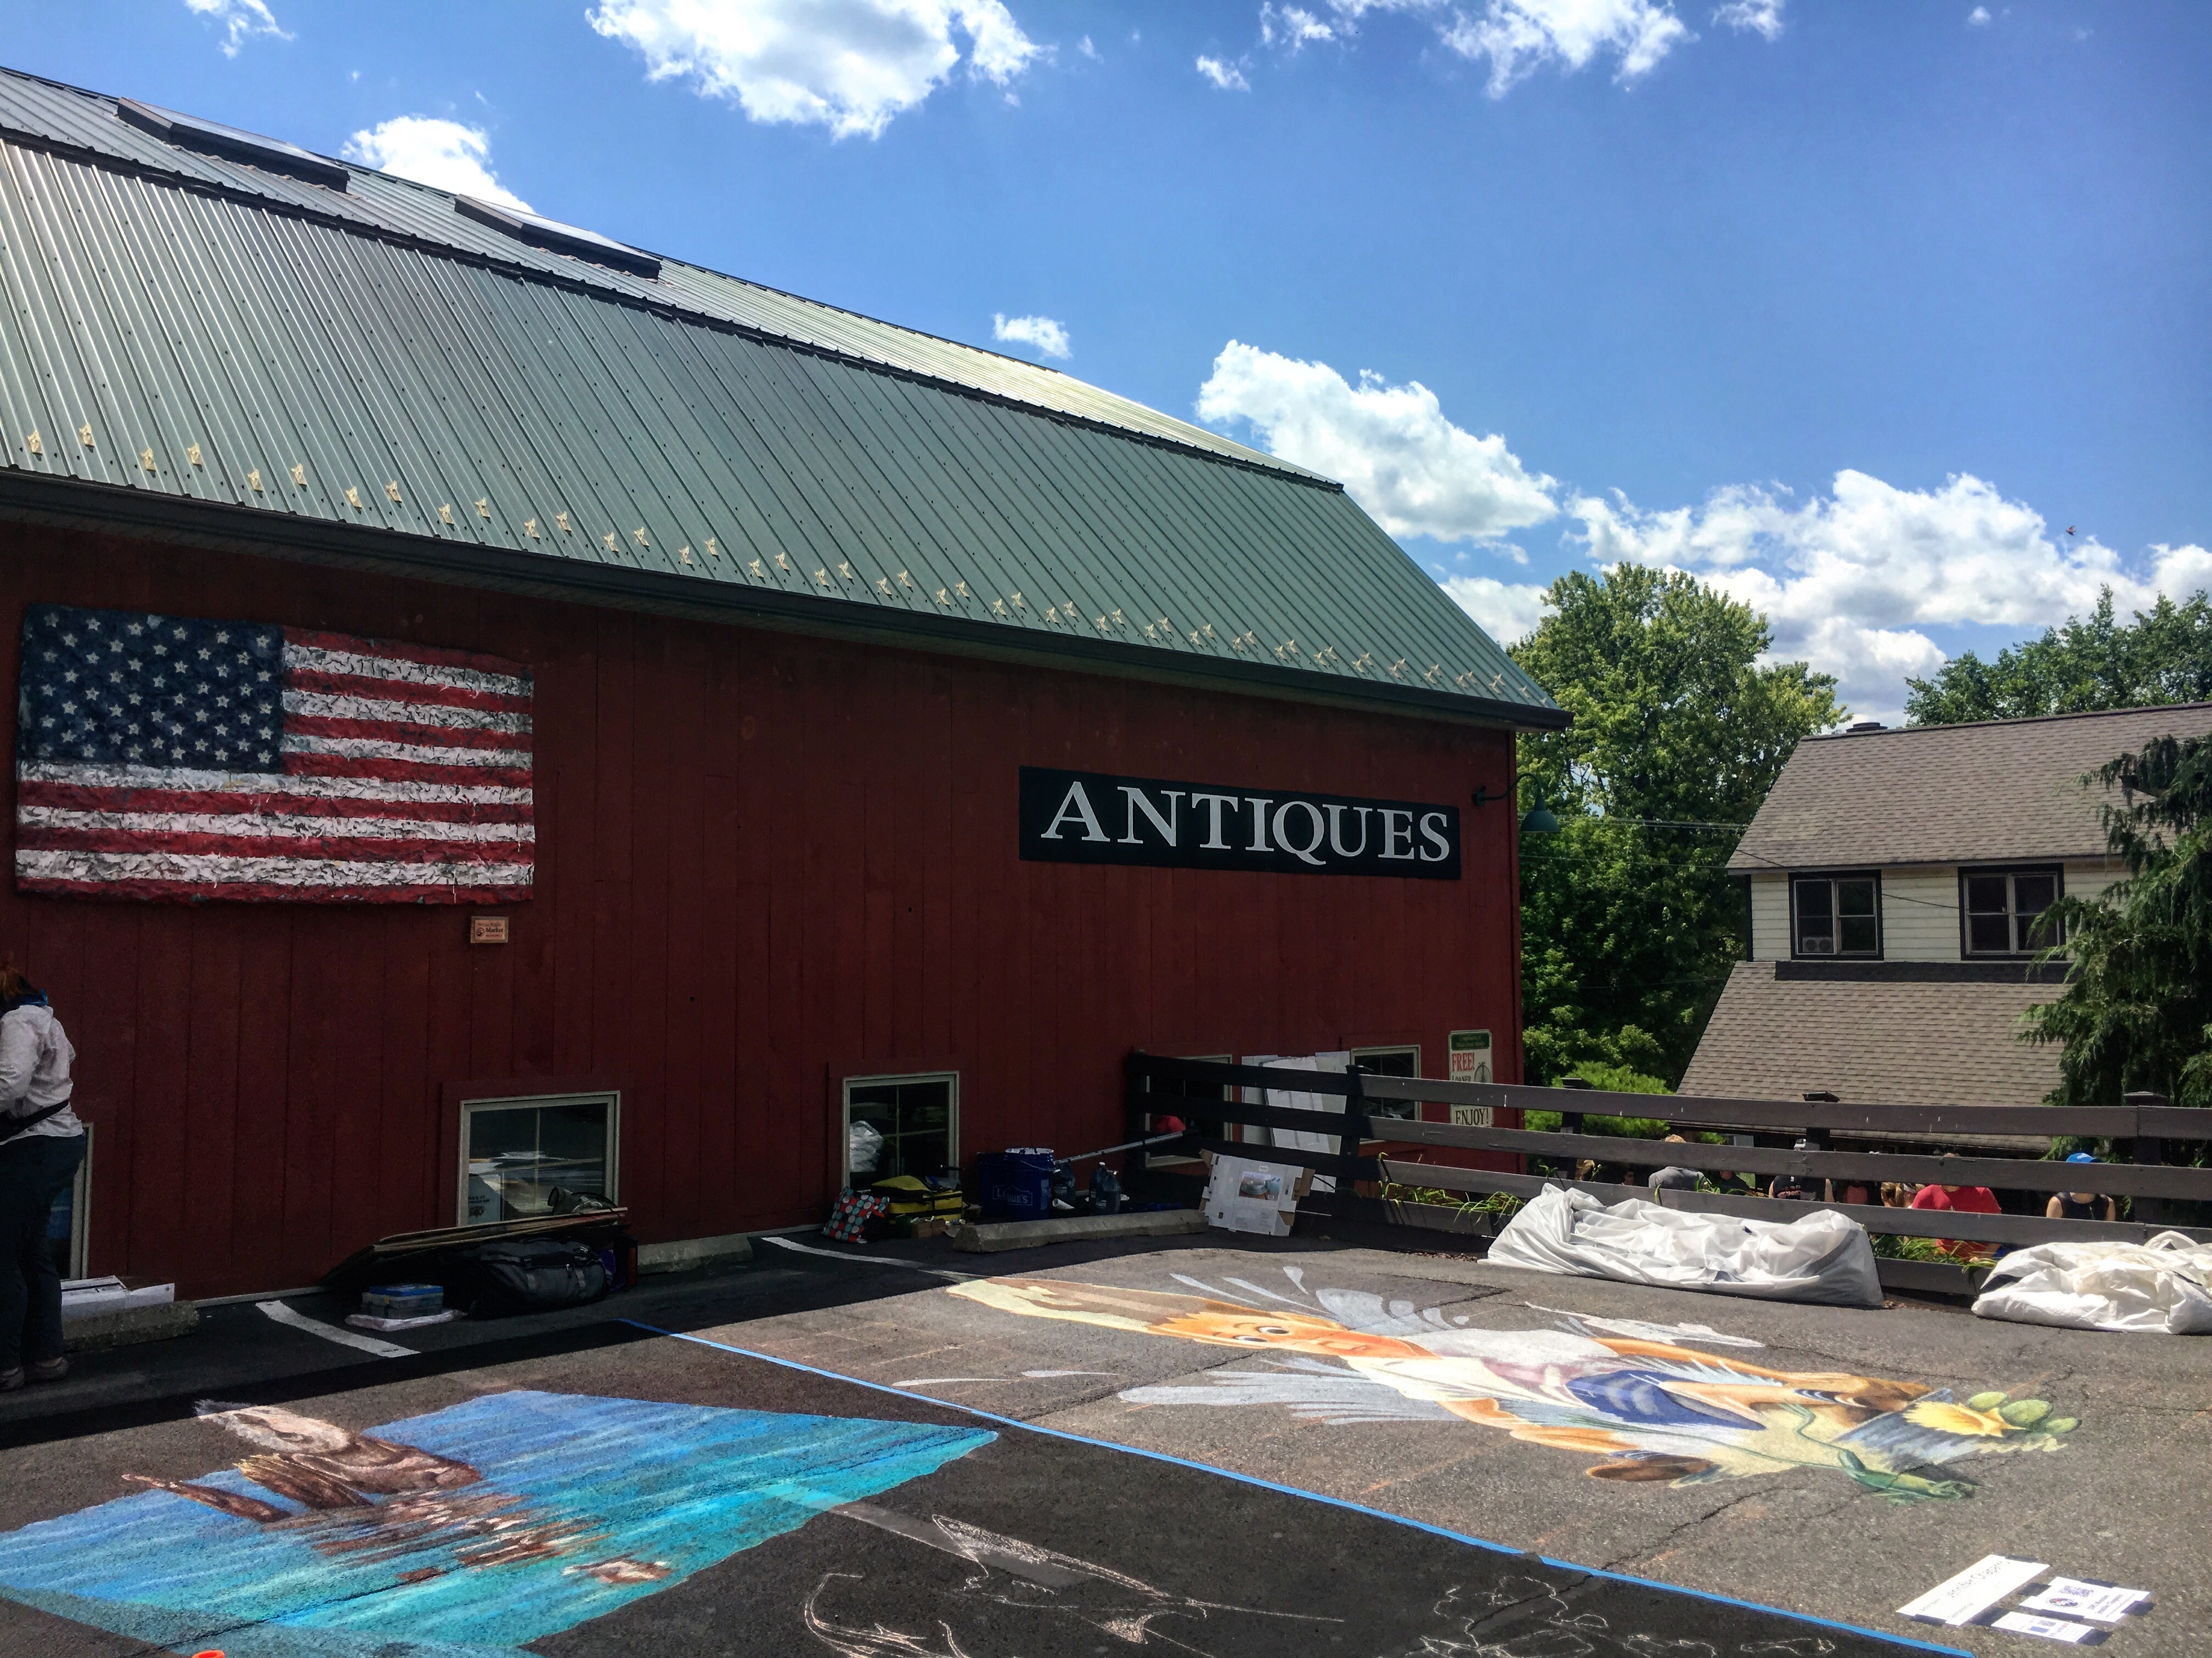 hudson valley chalk festival antiques